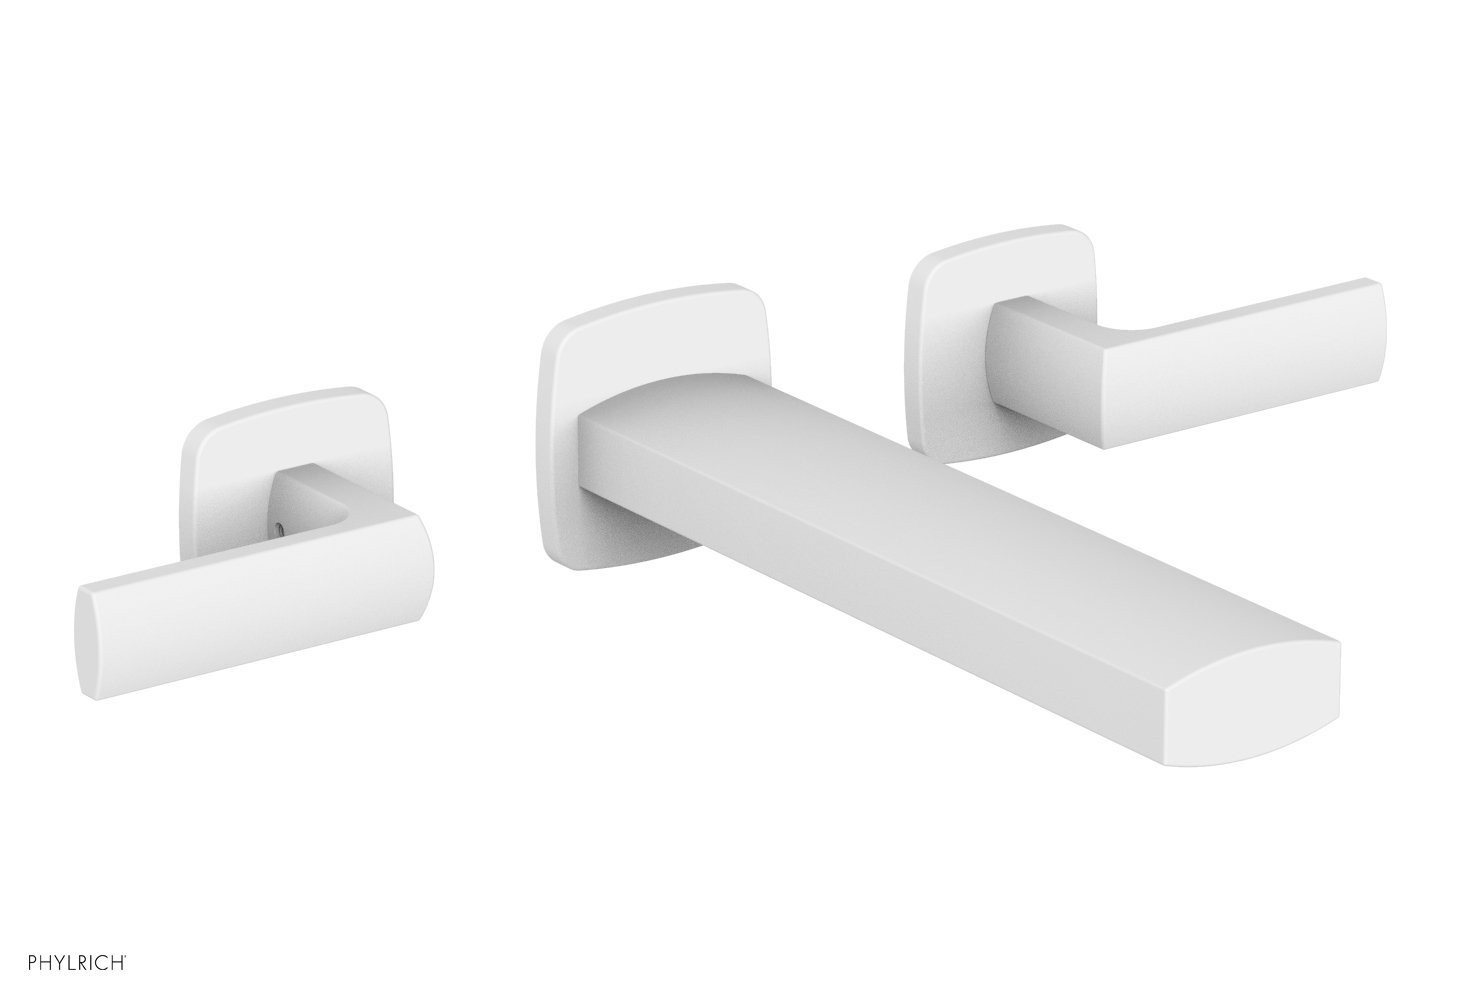 Phylrich 181-57-050 RADI Wall Tub Set - Lever Handles - Satin White